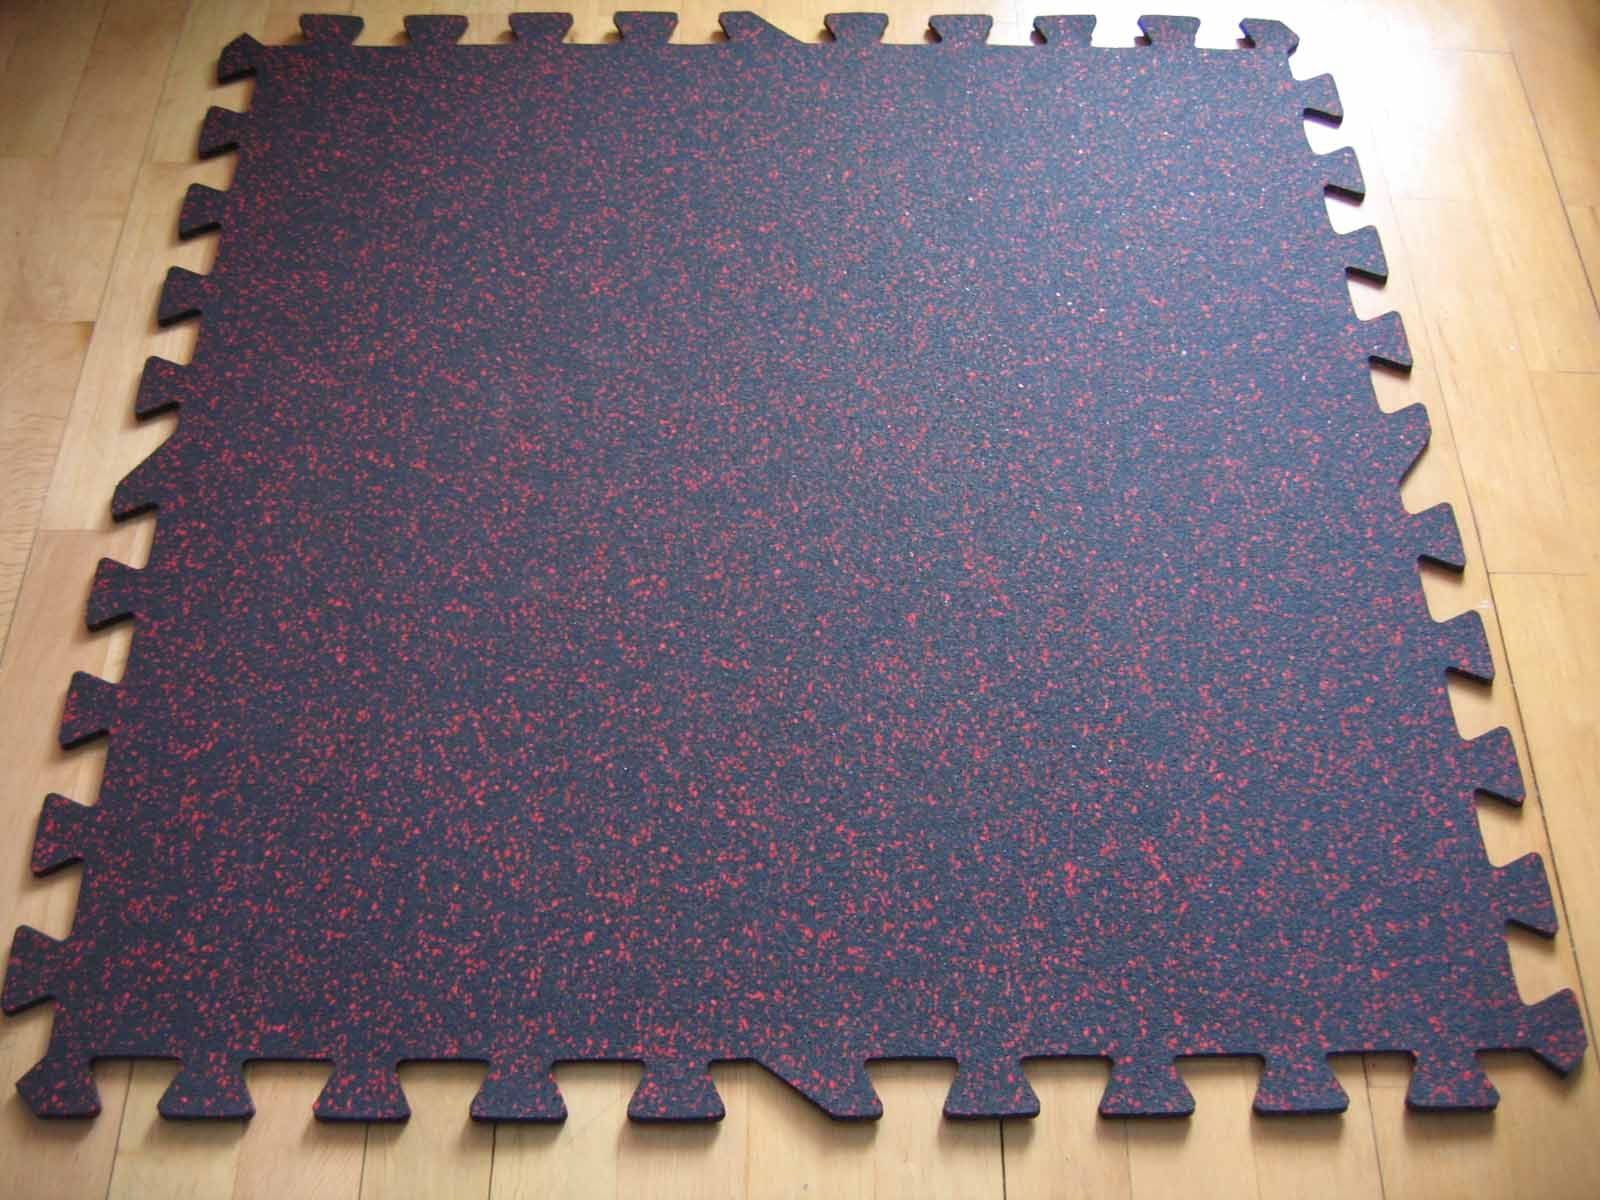 The Gym Interlocking Mats that we offer are designed and